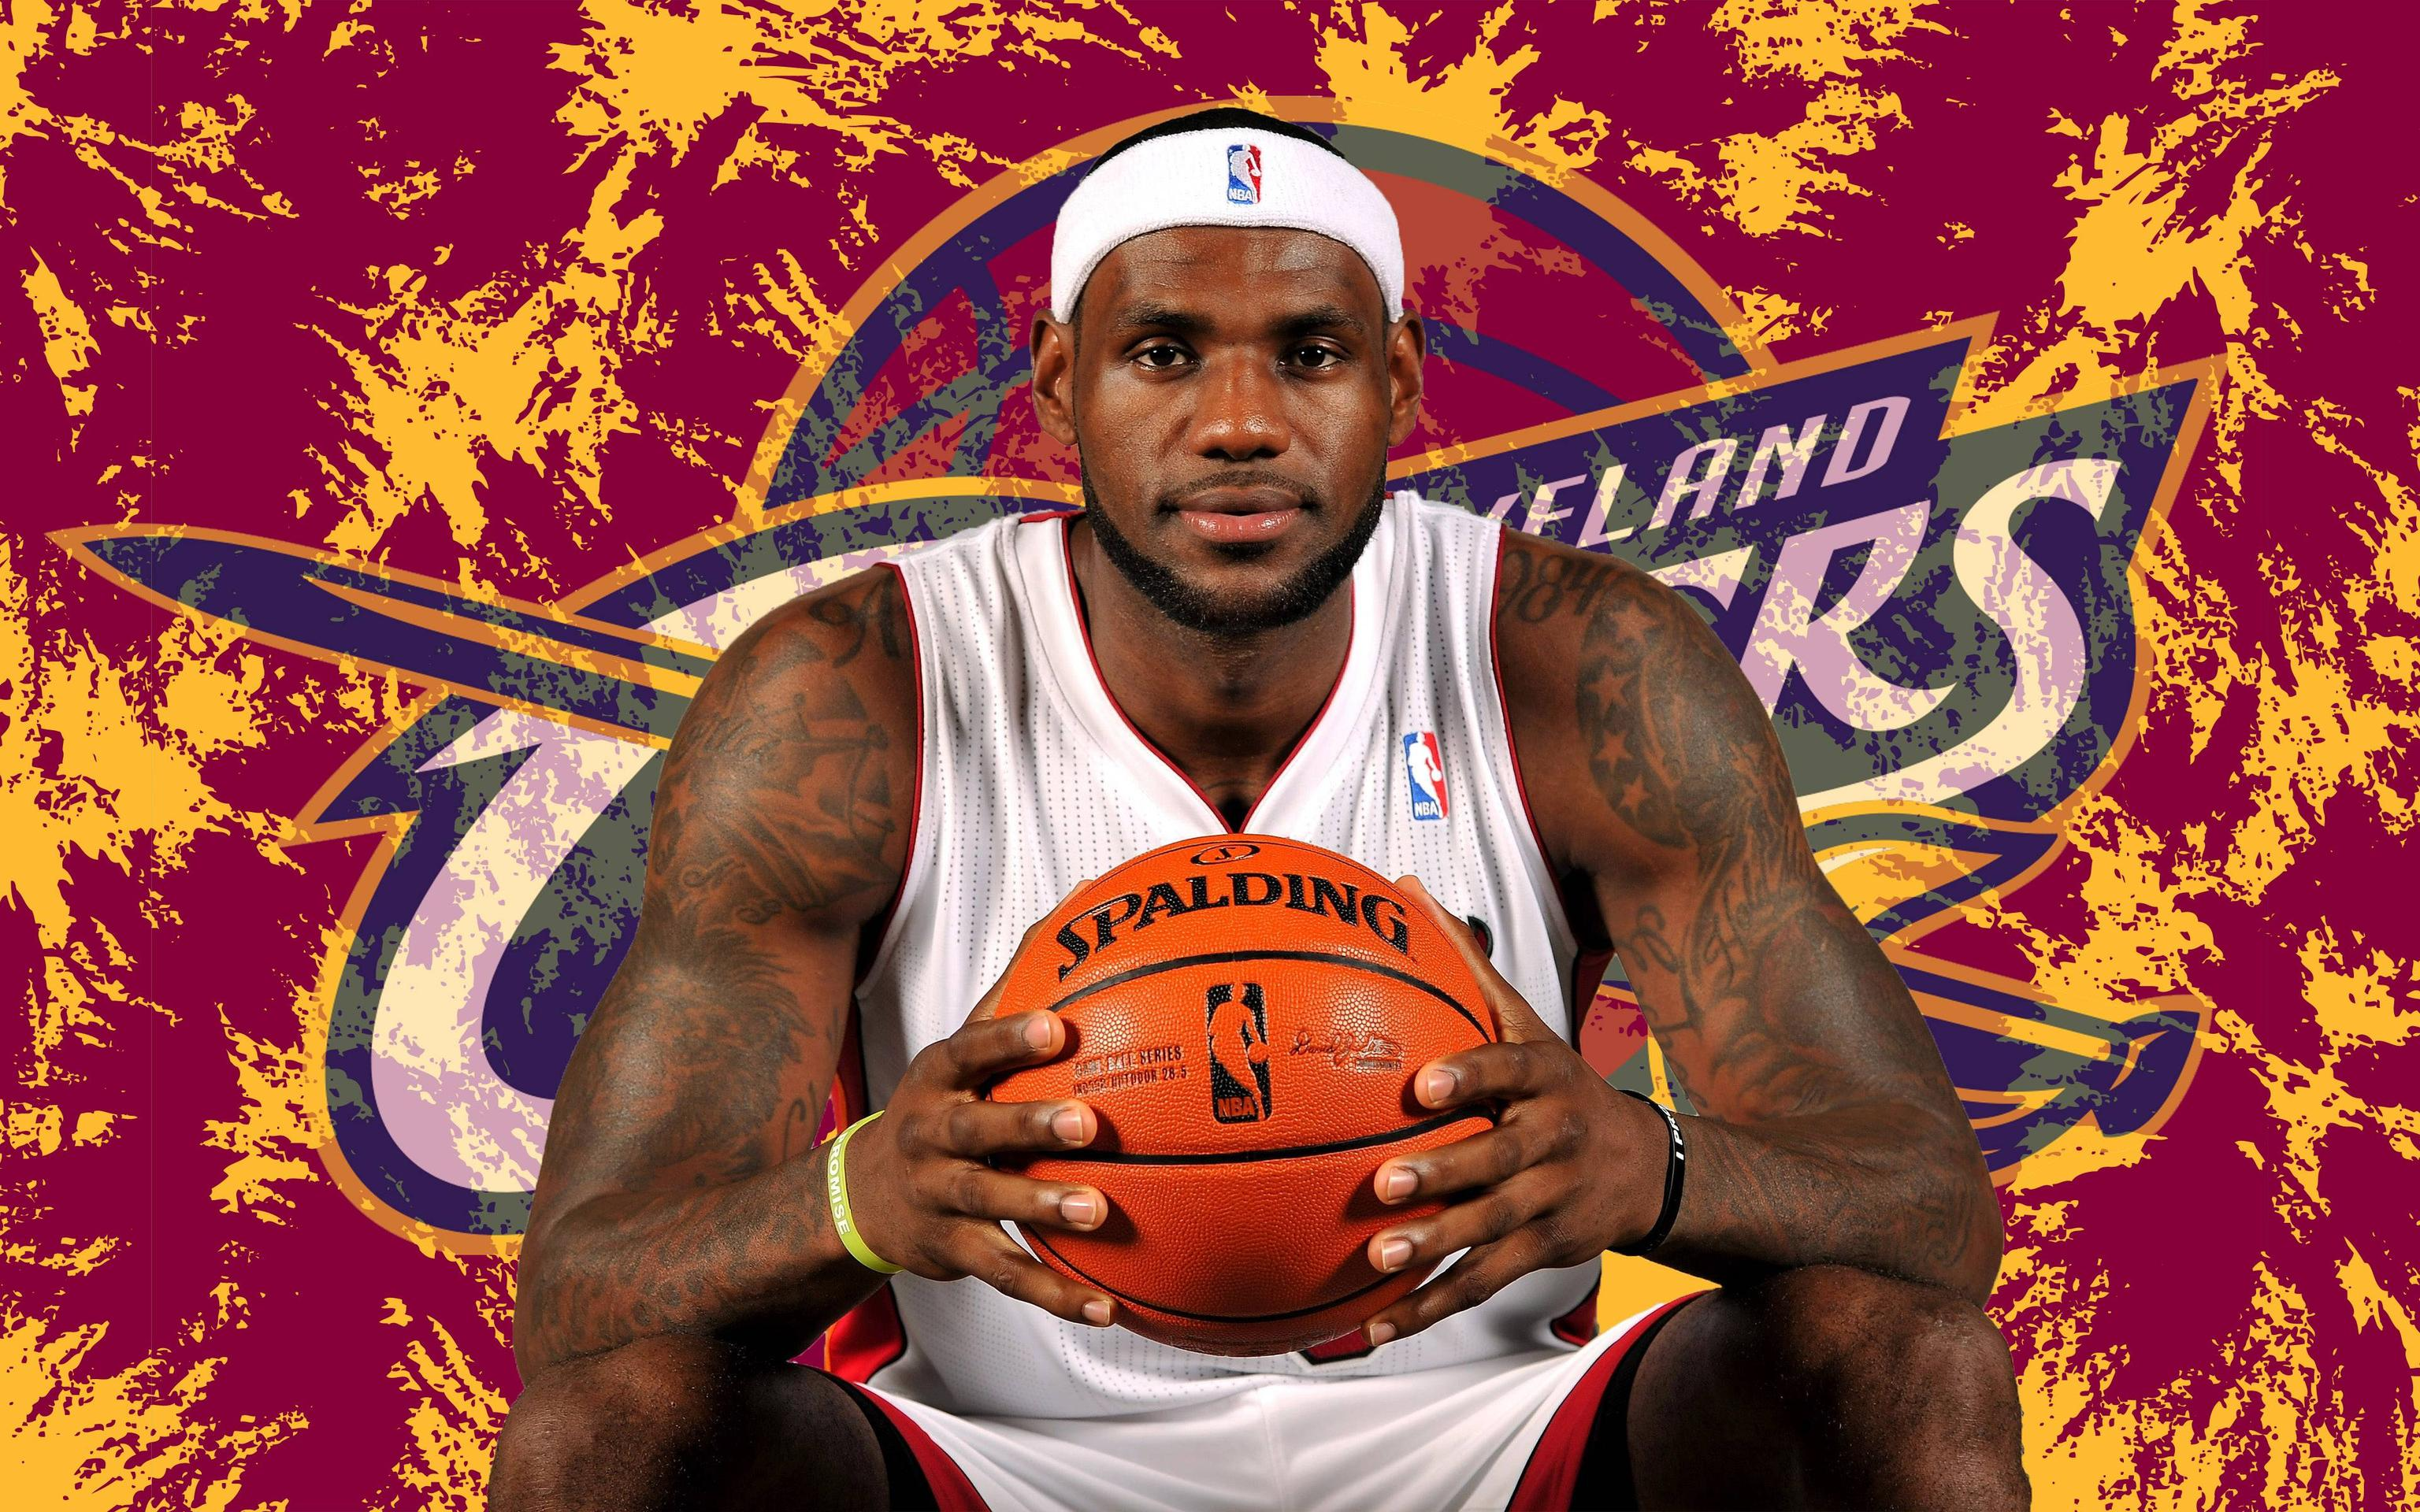 Lebron James Cleveland Wallpapers 2016 Wallpapers Backgrounds 3072x1920